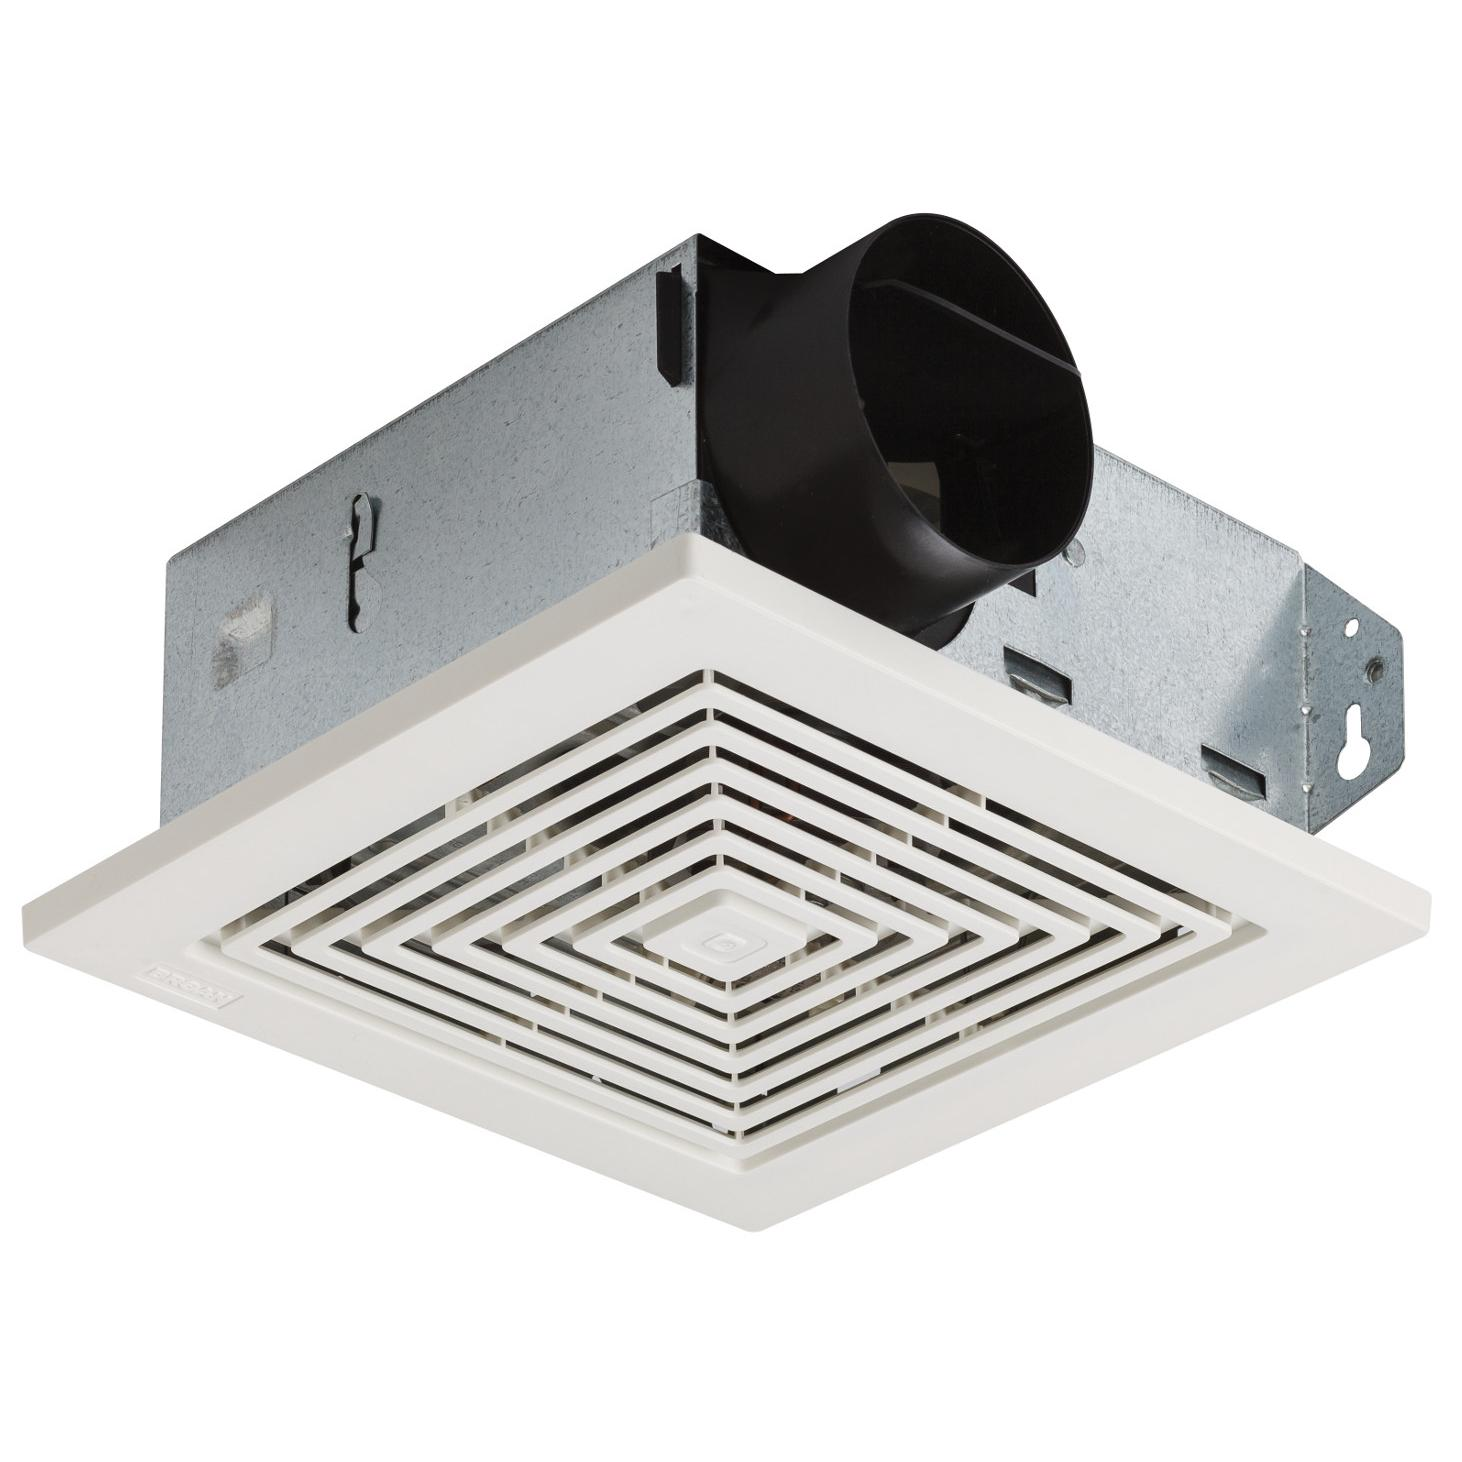 Broan 688 Ceiling And Wall Mount Fan 50 Cfm 40 Sones White Electric Install Page 4 Model Ventilation Grille